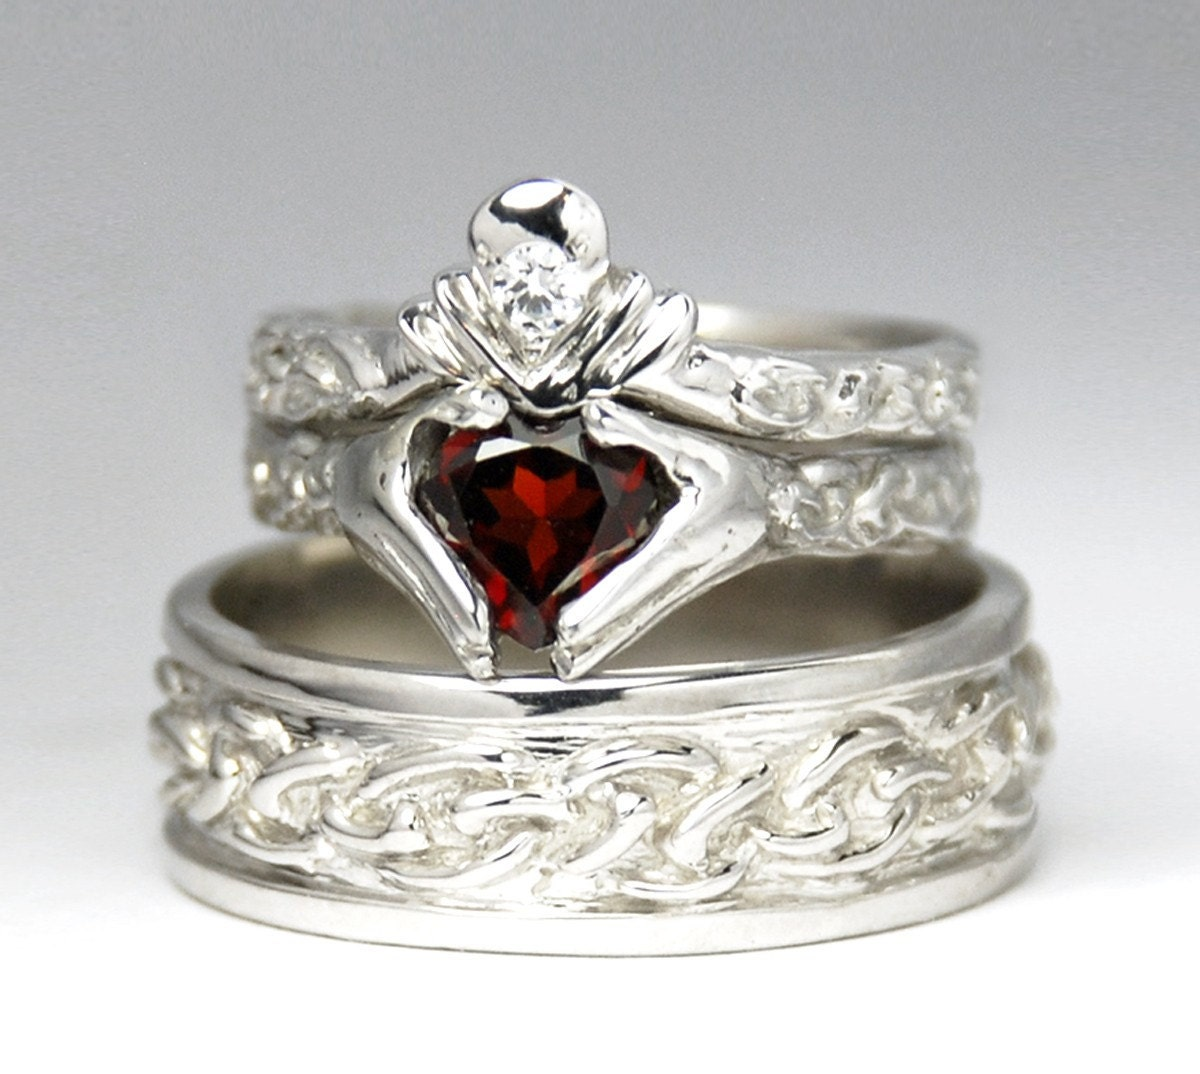 claddagh engagement ring - photo #41